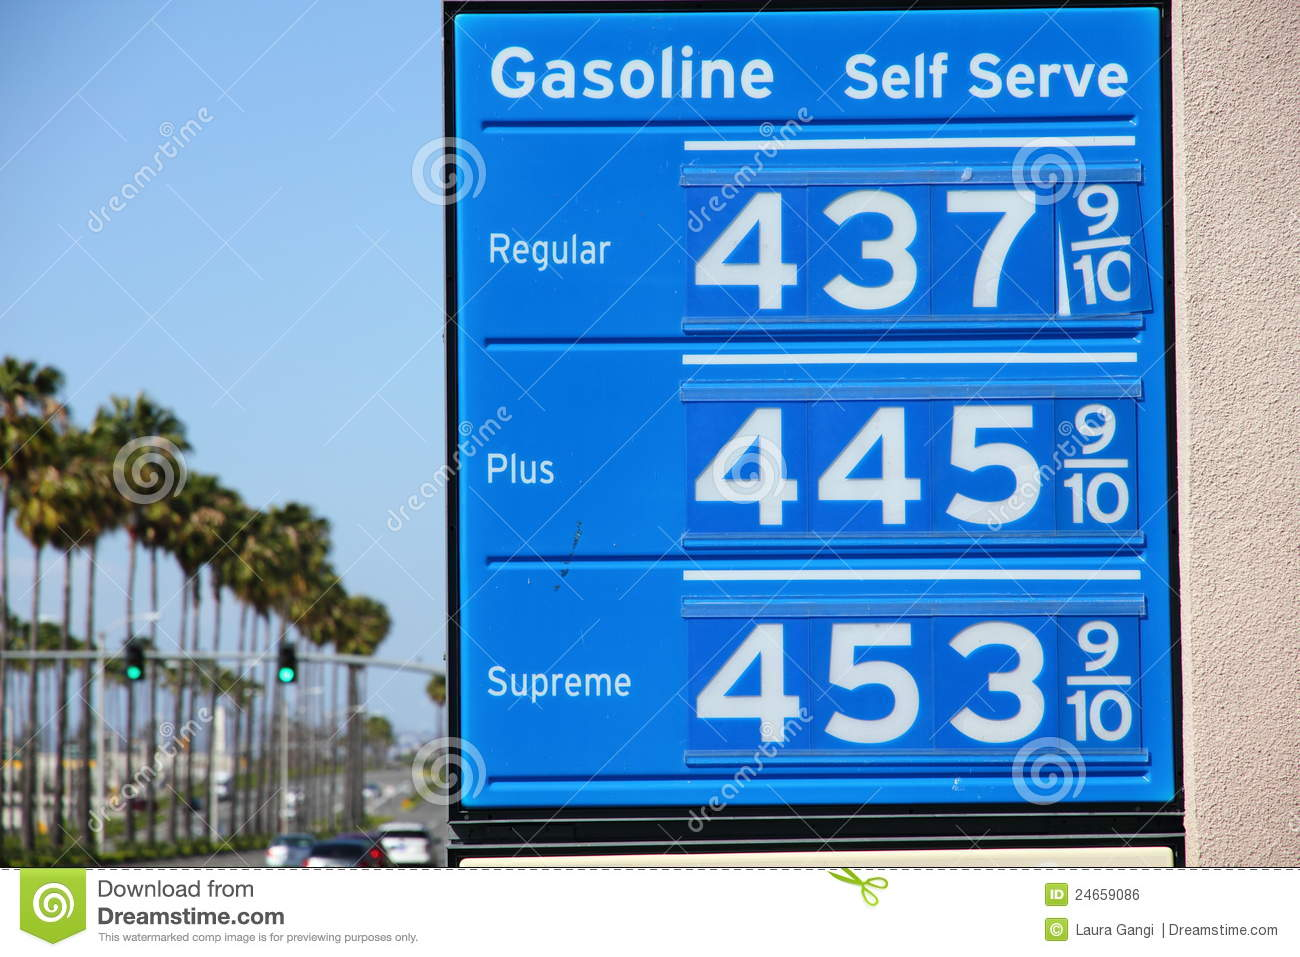 Gas Prices In California >> Sky High Gas Price Sign With Palm Trees Stock Photo - Image: 24659086